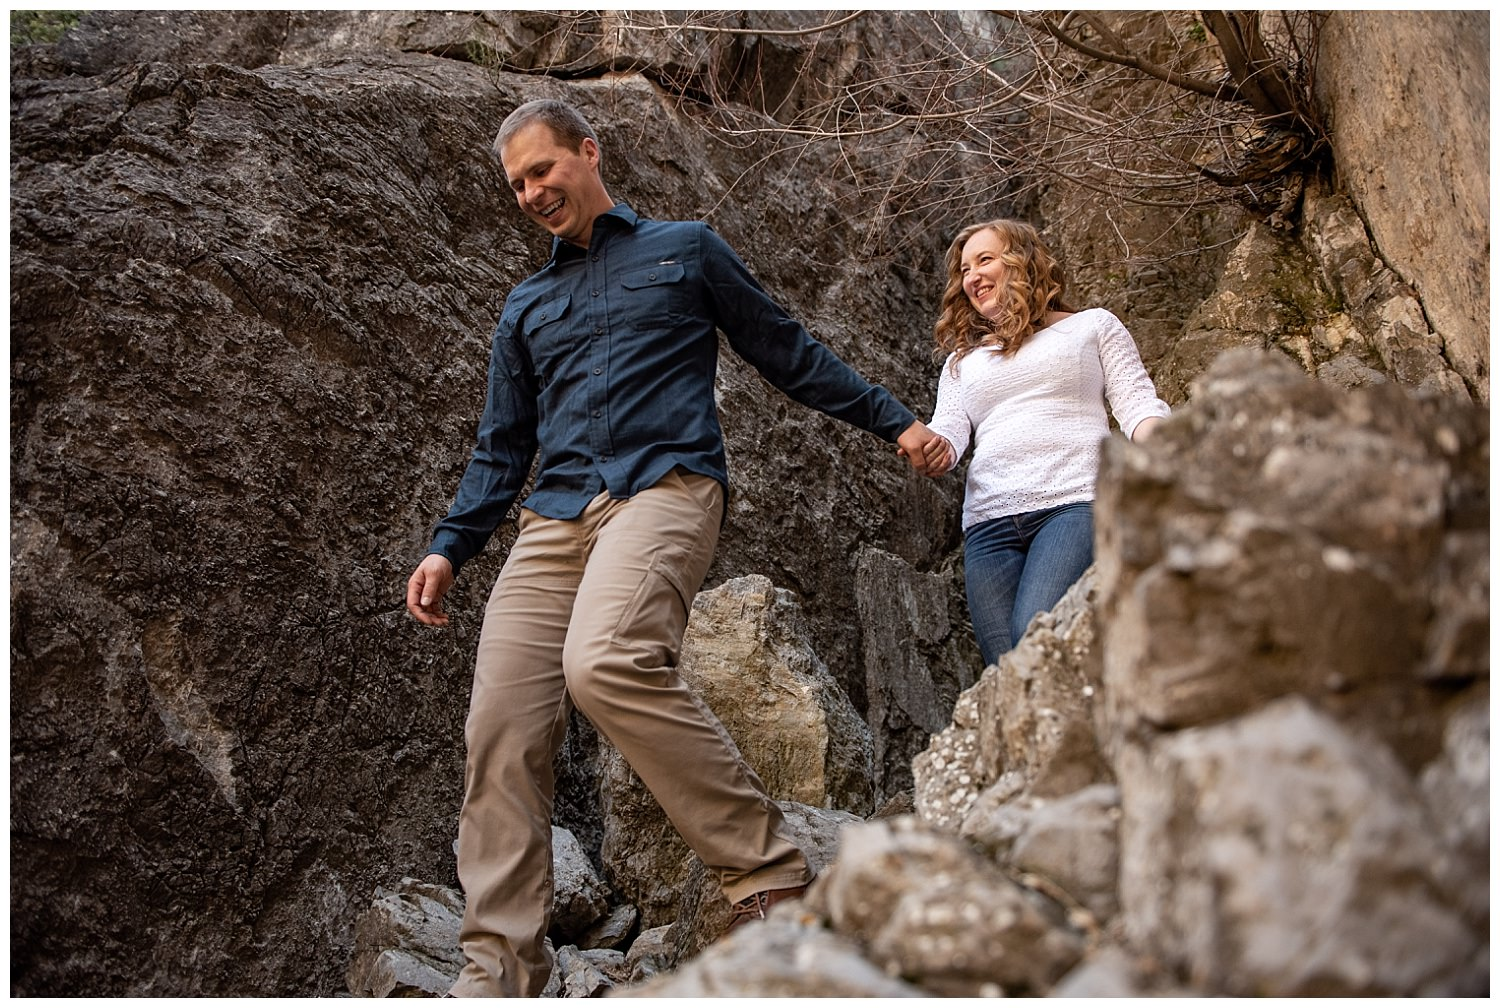 Dan Page Photography, Rock Climbing Engagement Adventure Session, Rock Canyon, Provo (19).jpg